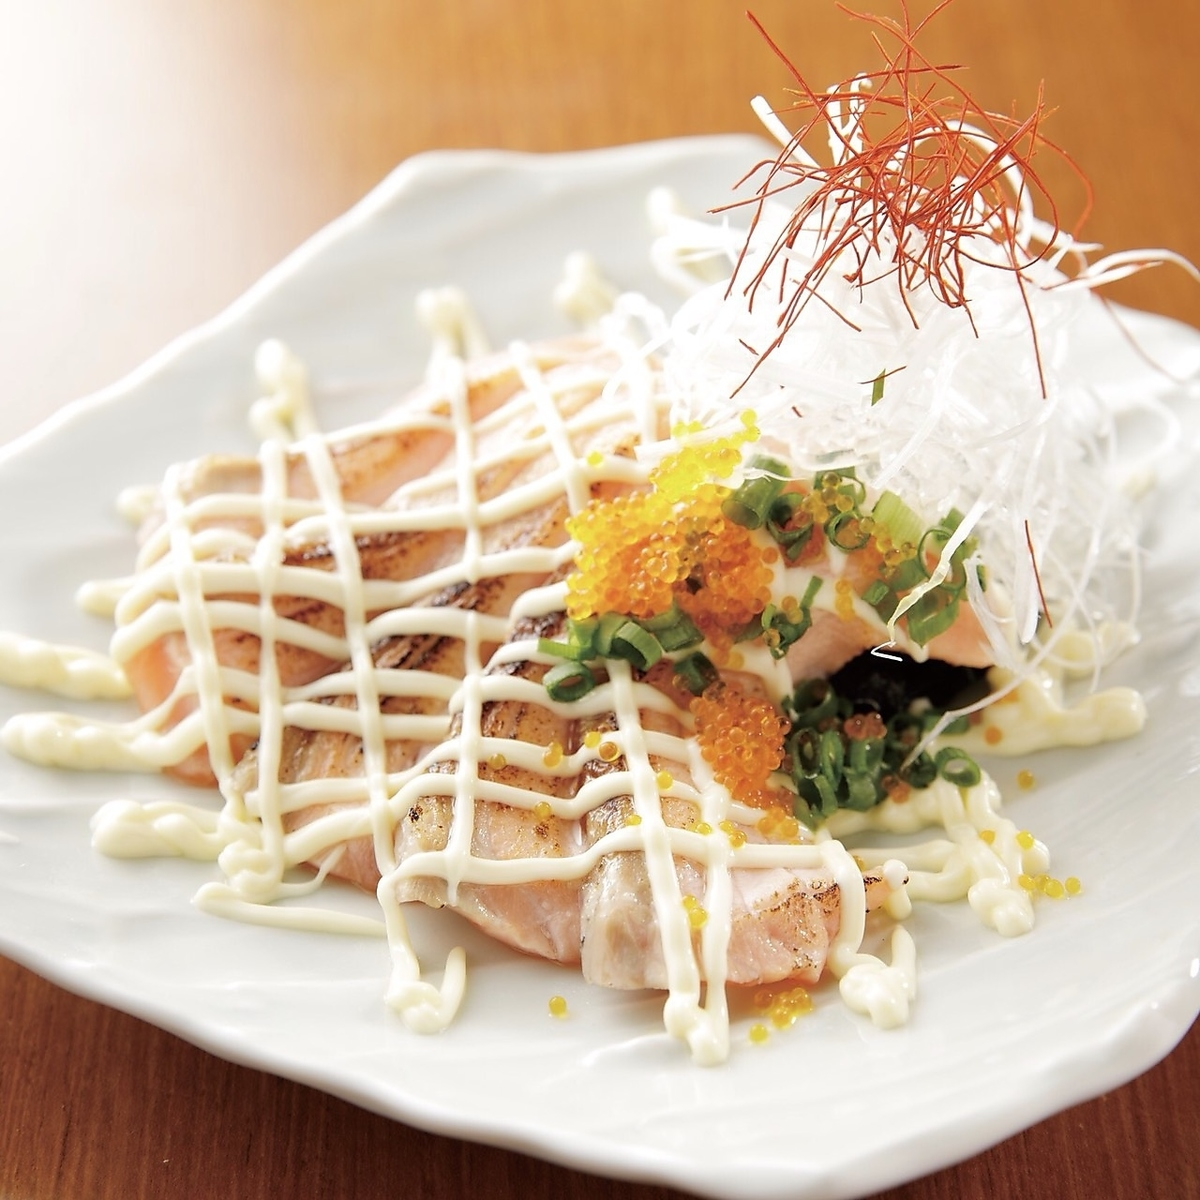 Grilled salmon with salmon soy sauce Mayo